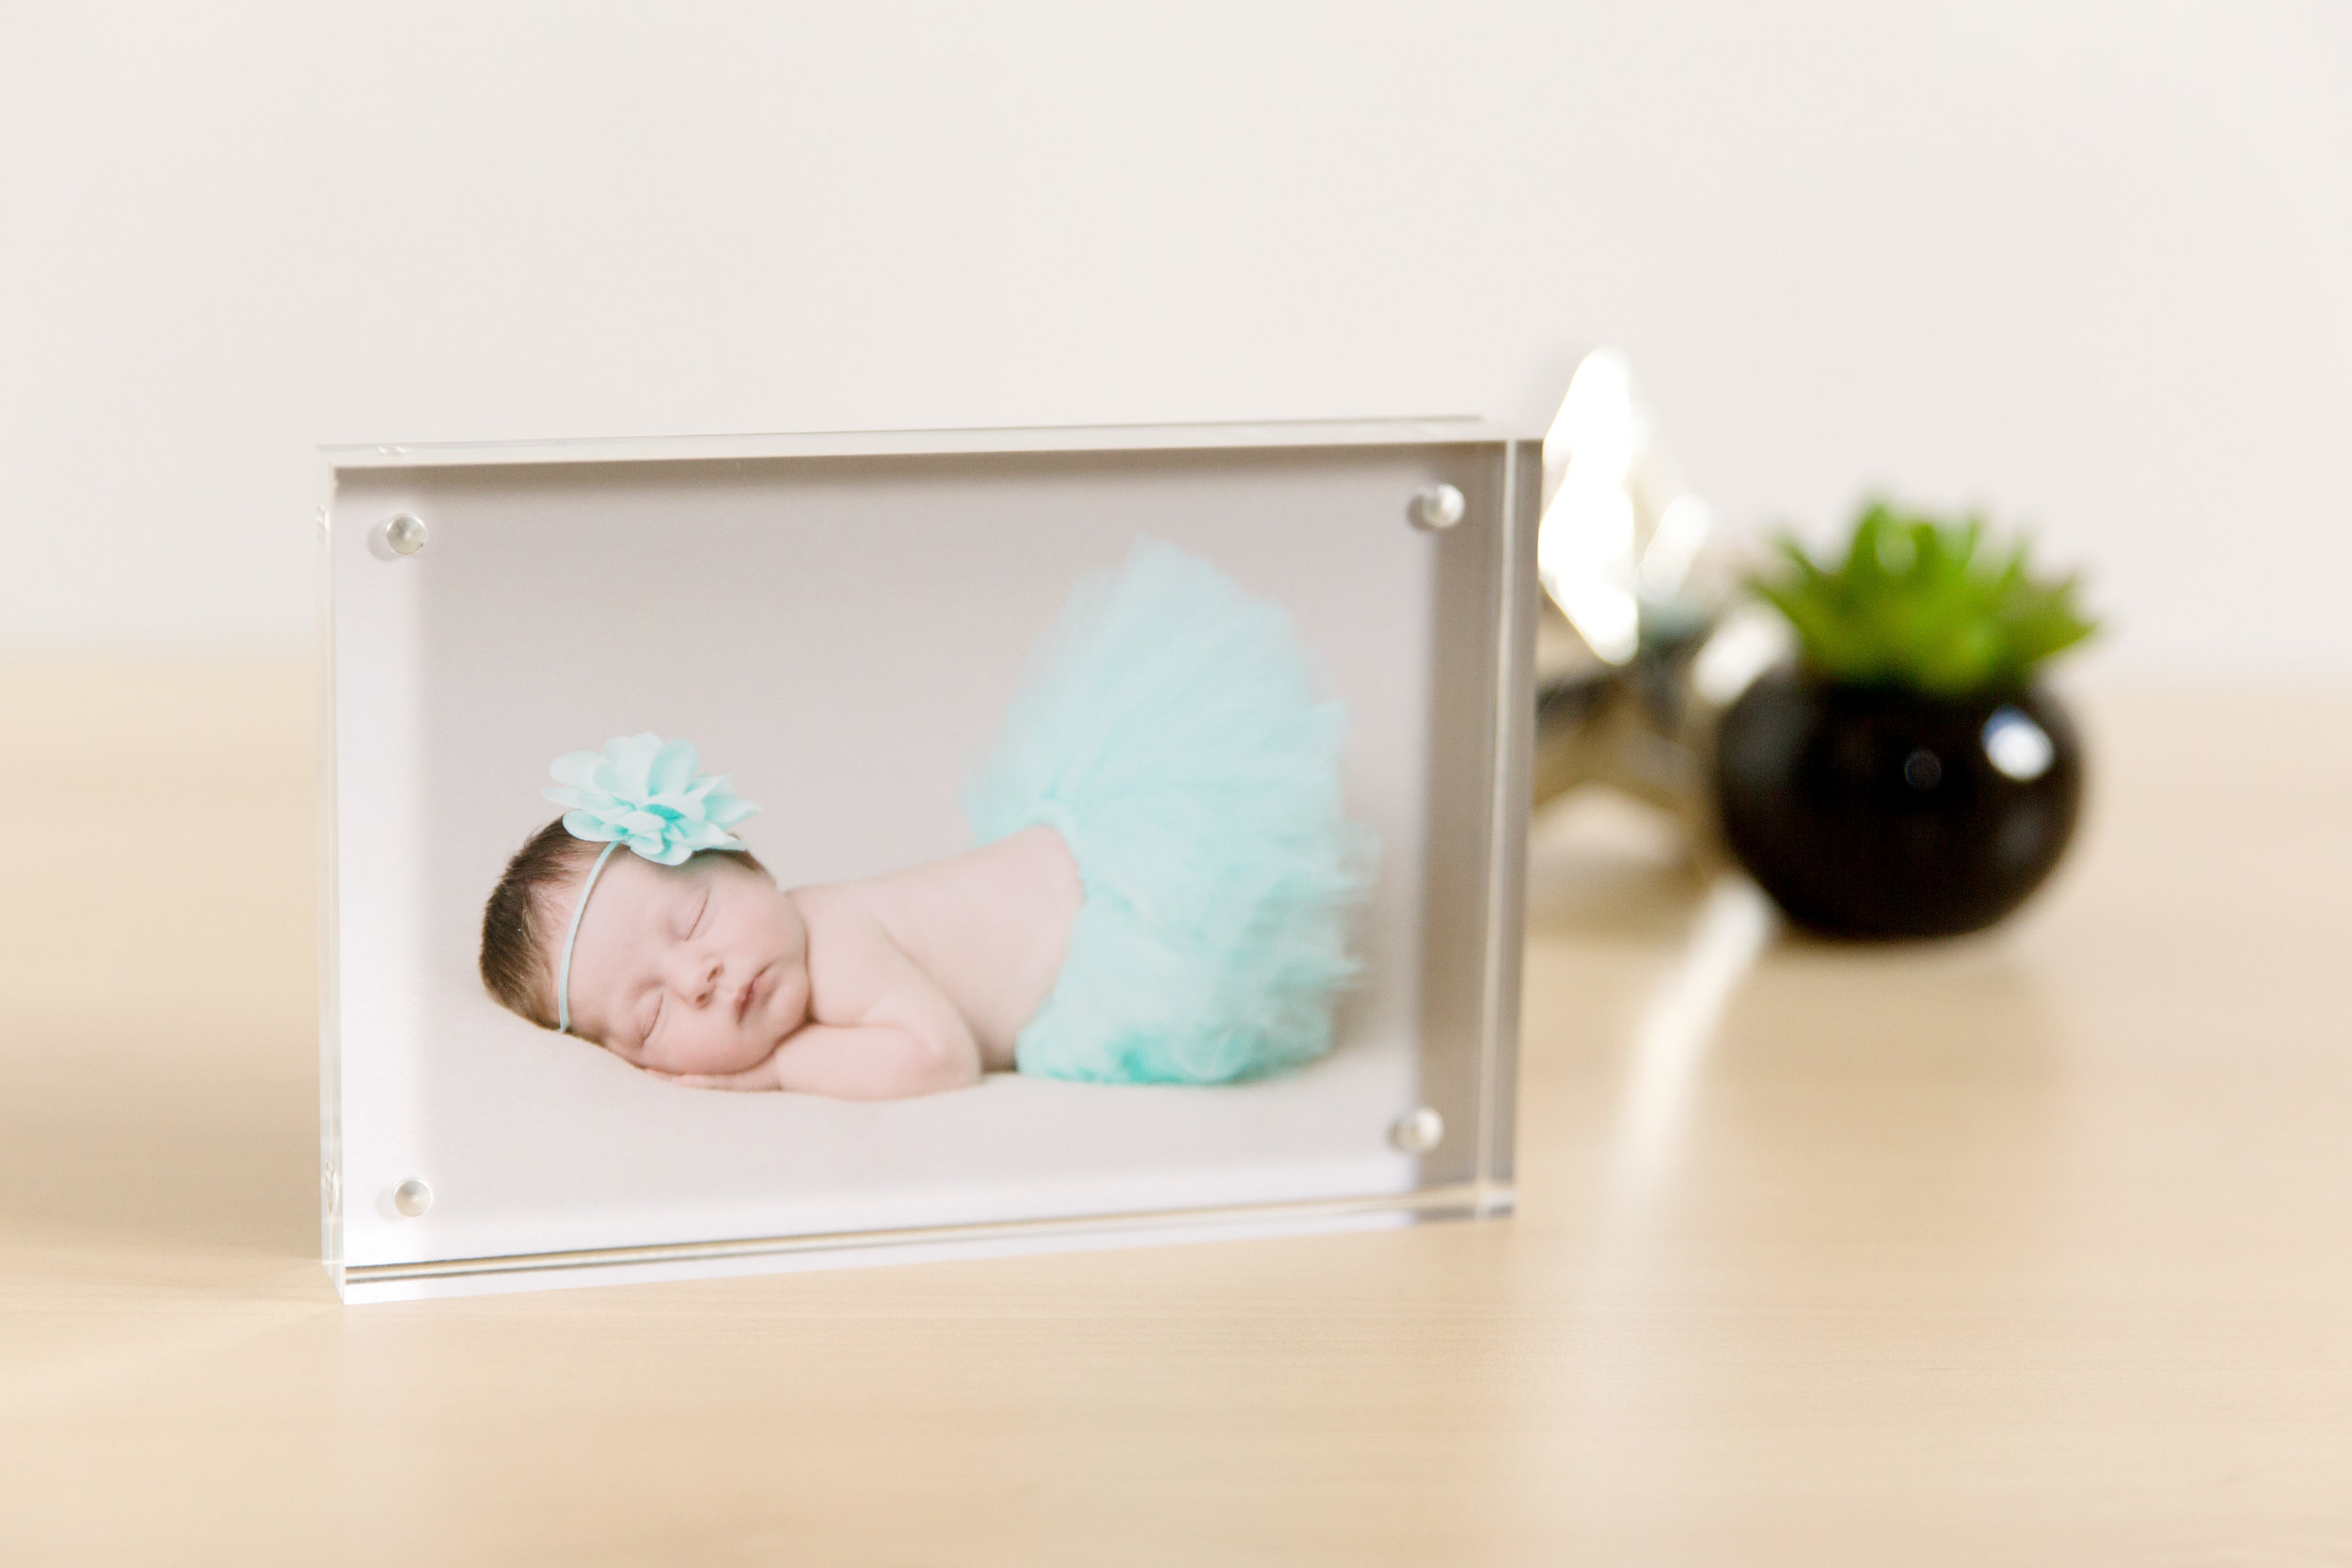 acrylic block for a desk display with newborn baby photo taken by becki williams photography